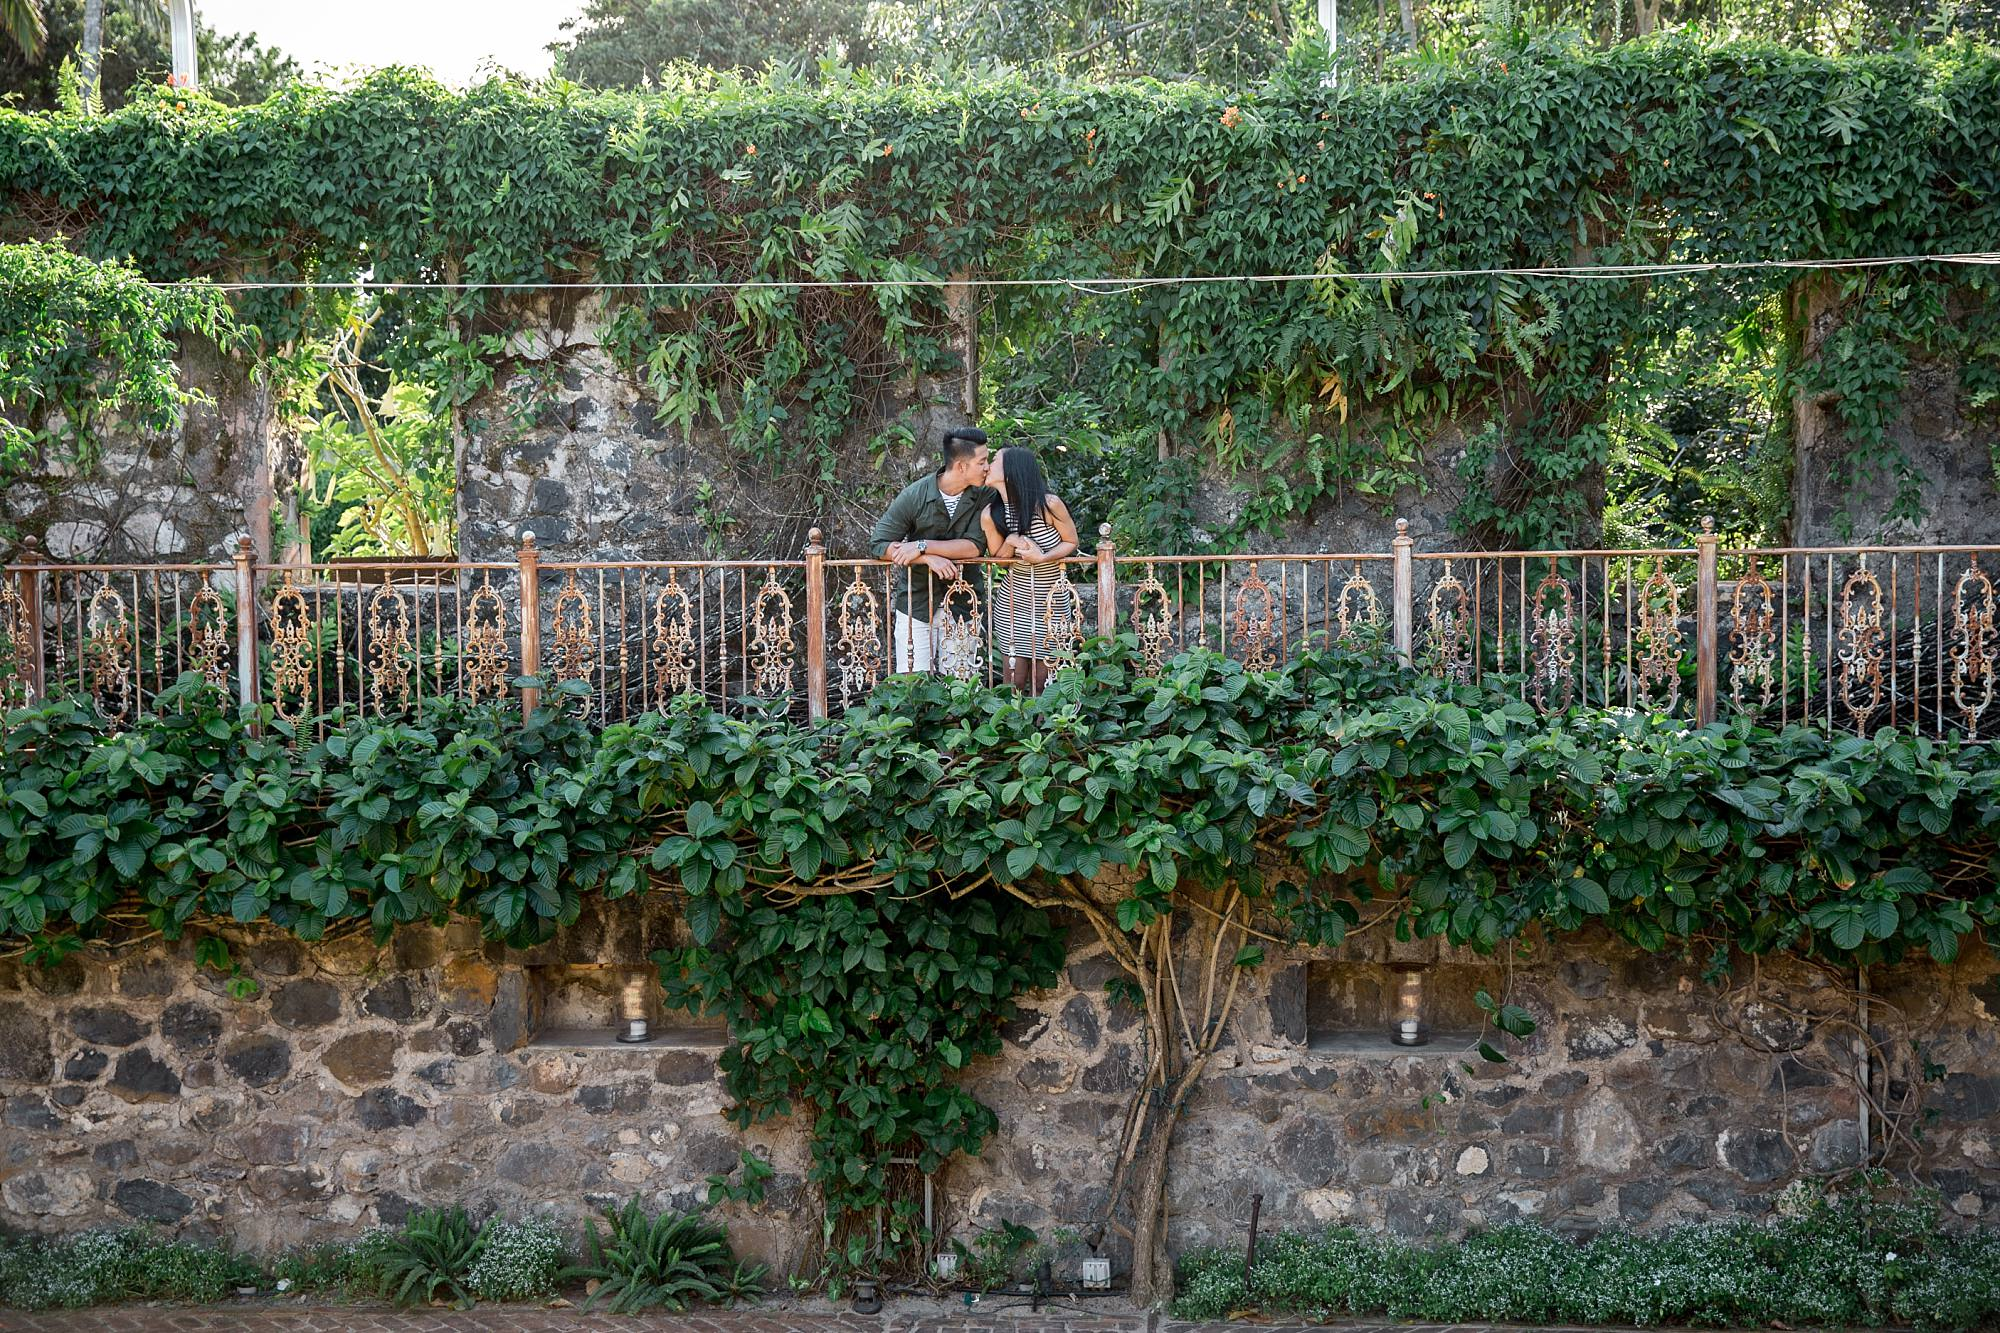 Fiances kissing on top of stone walkway with beautiful greenery